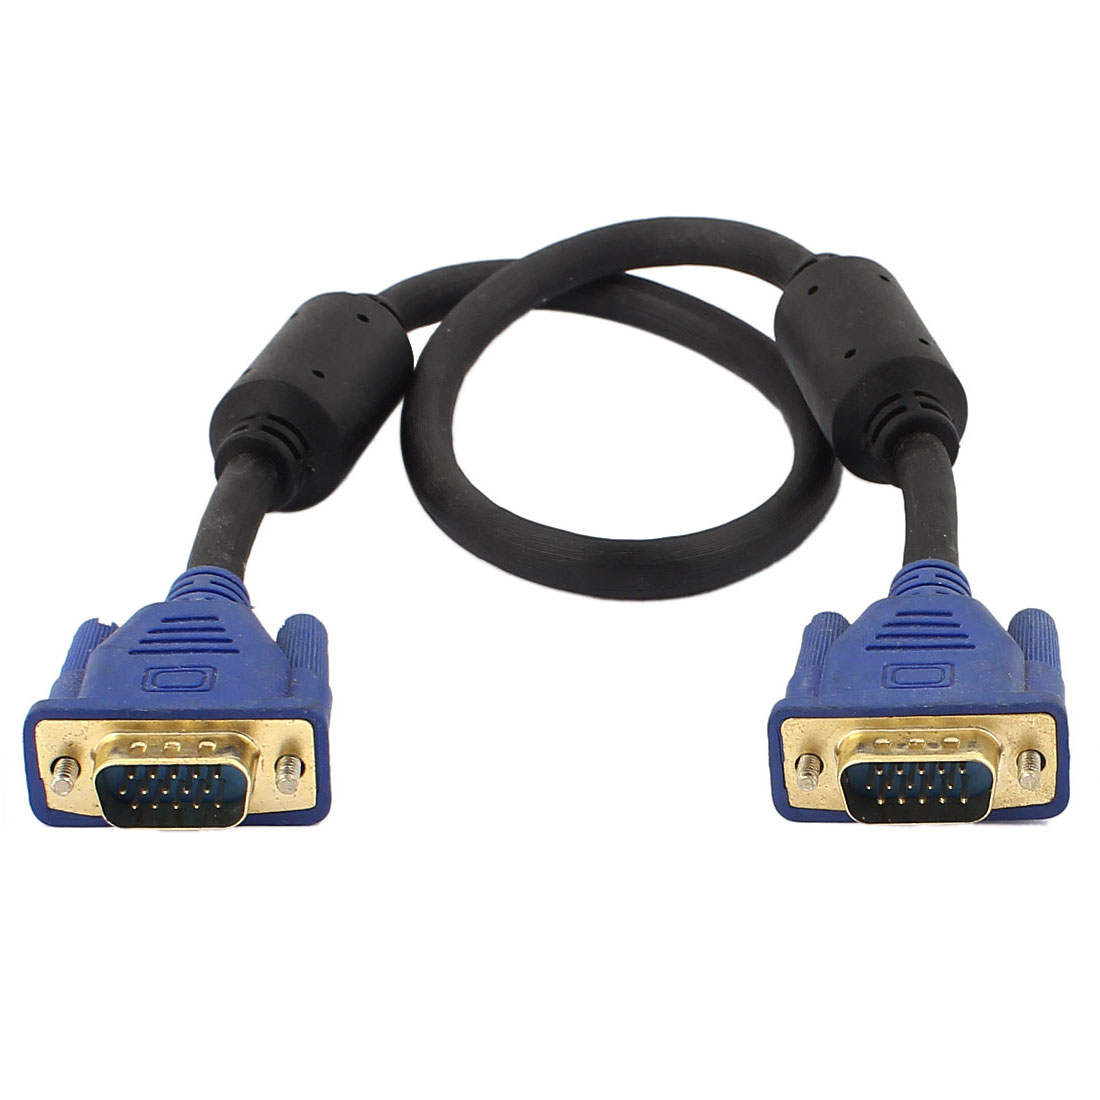 Blue 15 Pin SVGA VGA Adapter Monitor M/M Male To Male Cable Cord For PC TV